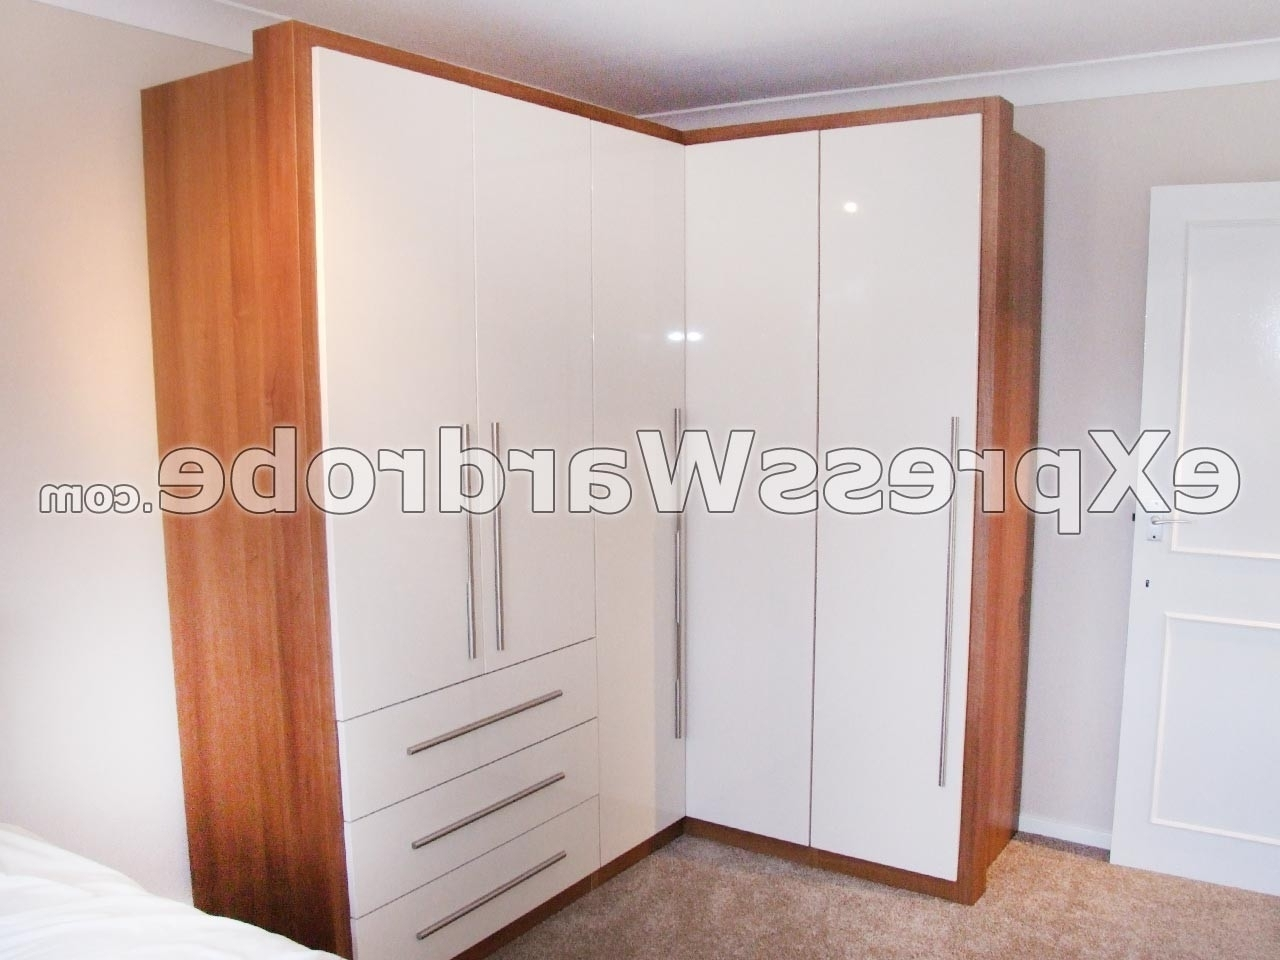 Fashionable Cheap Corner Wardrobes Within Inspirational Cheap Corner Wardrobes Uk – Badotcom (View 5 of 15)